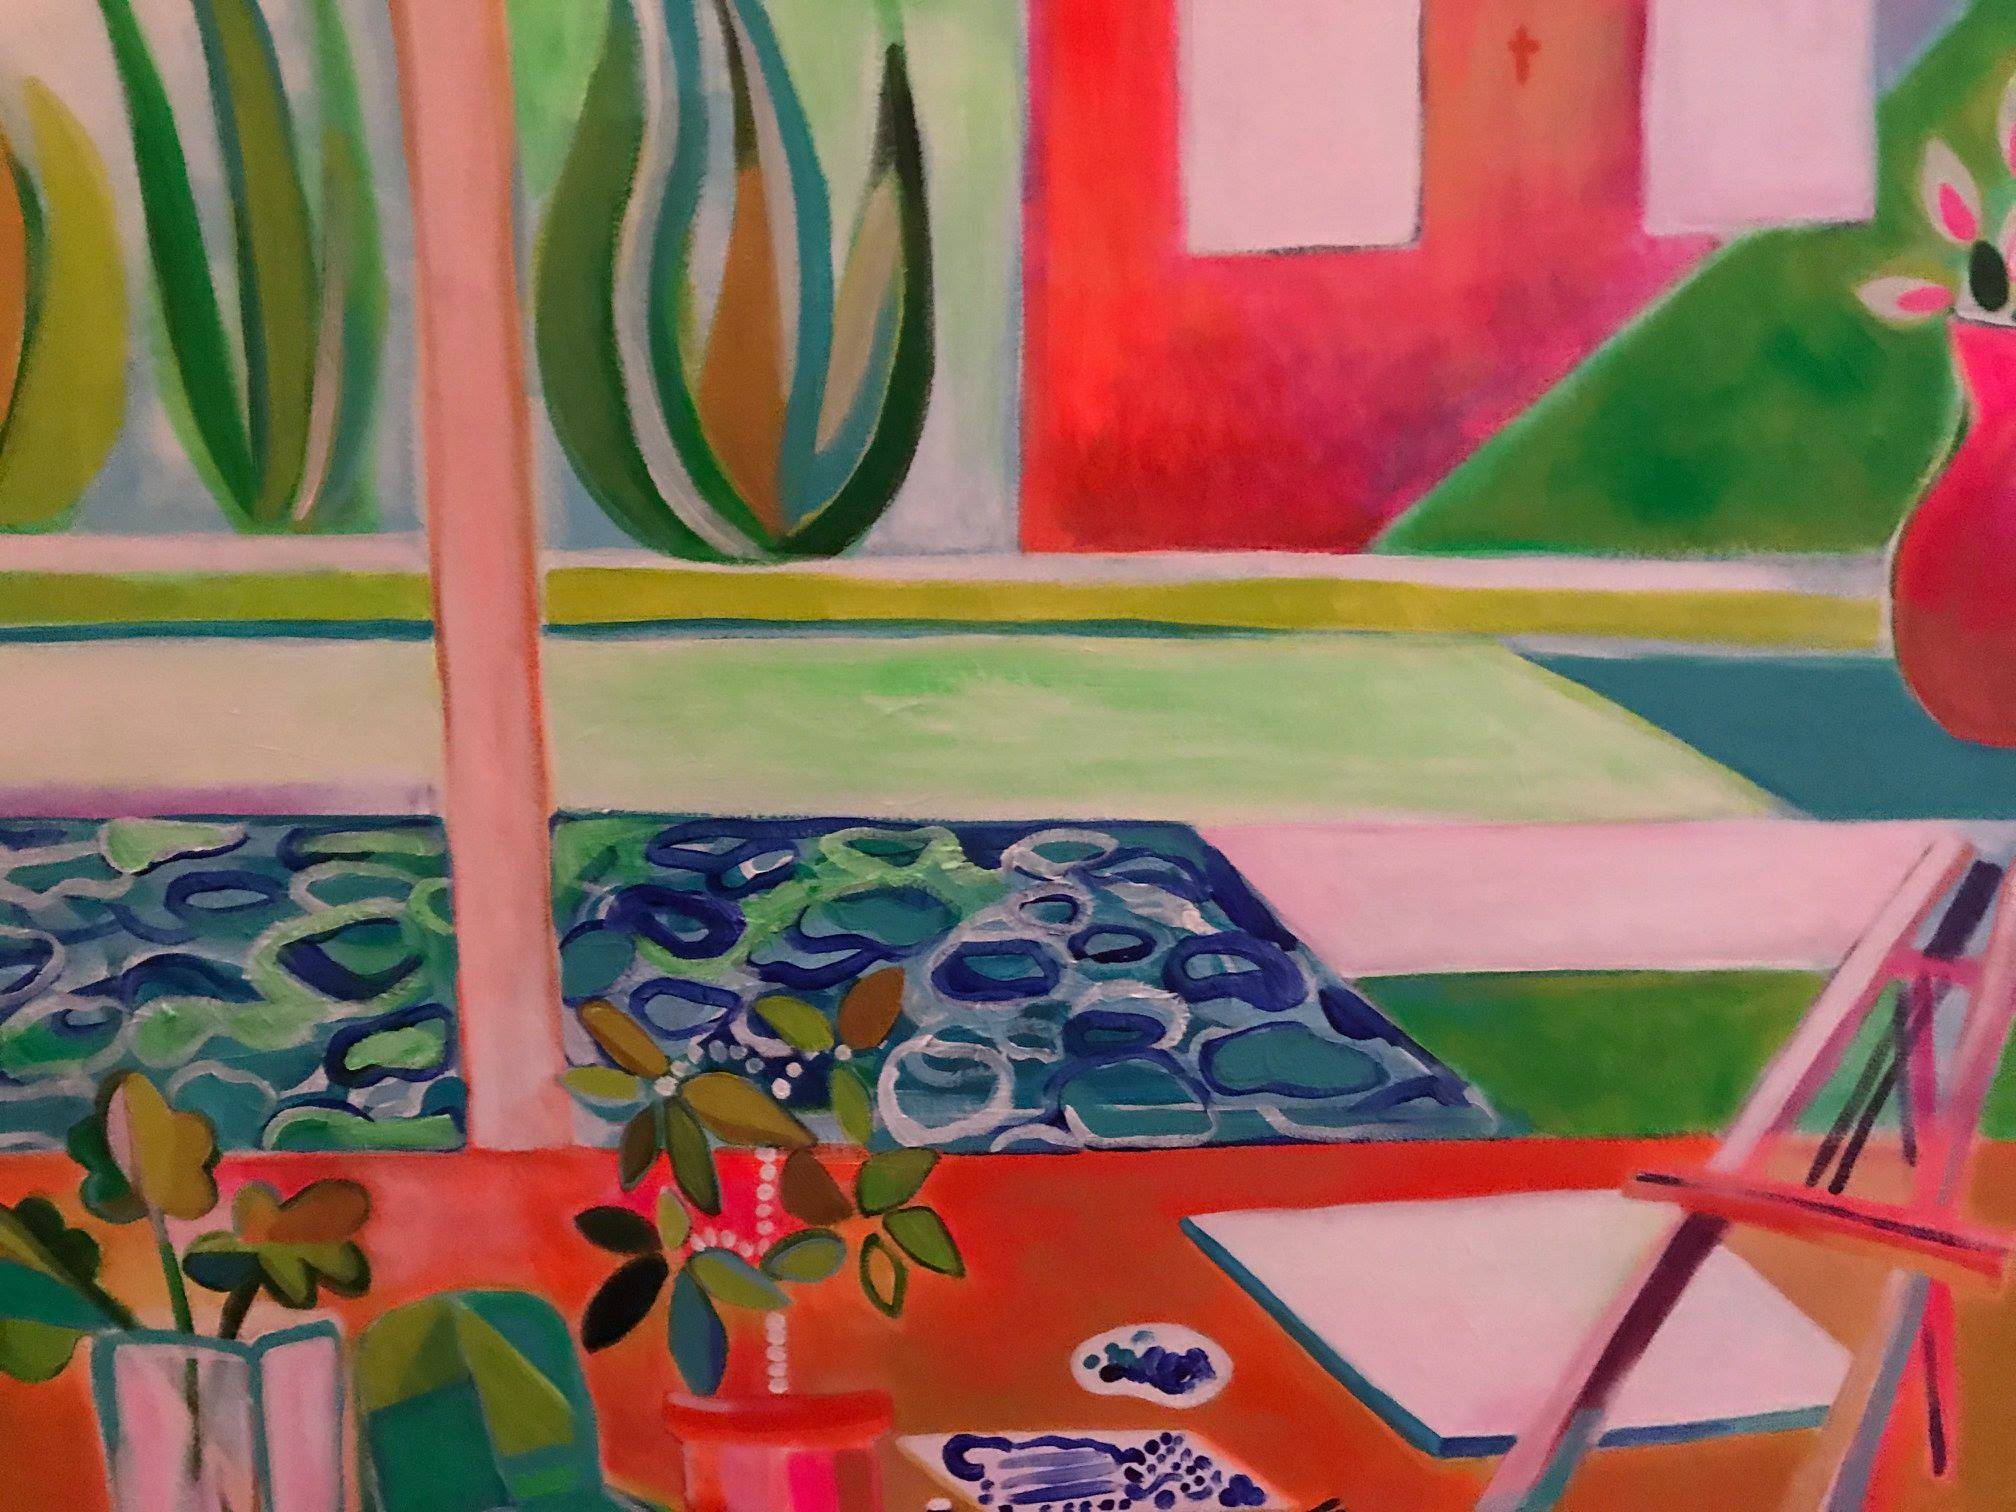 A glimpse at an acrylic painting by Nicole Durocher